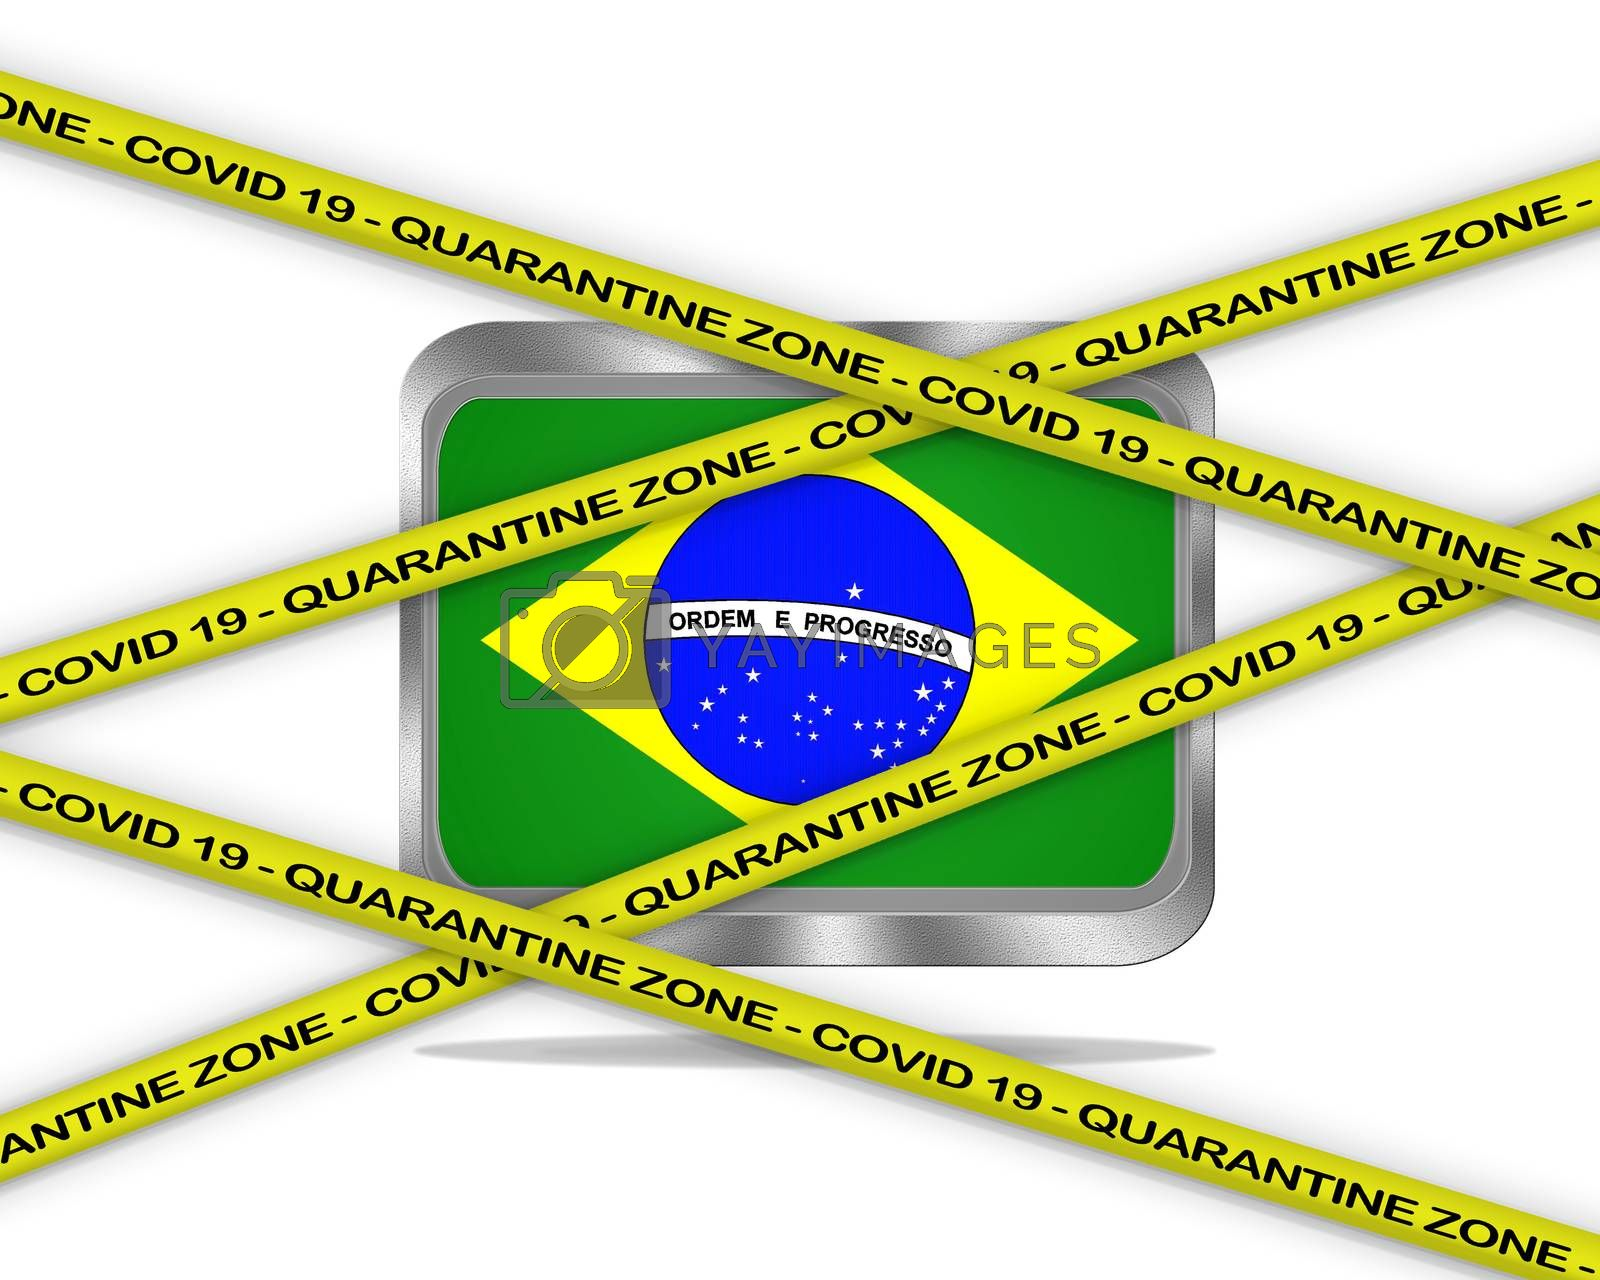 COVID-19 warning yellow ribbon written with: Quarantine zone Cover 19 on Brazil flag illustration. Coronavirus danger area, quarantined country.